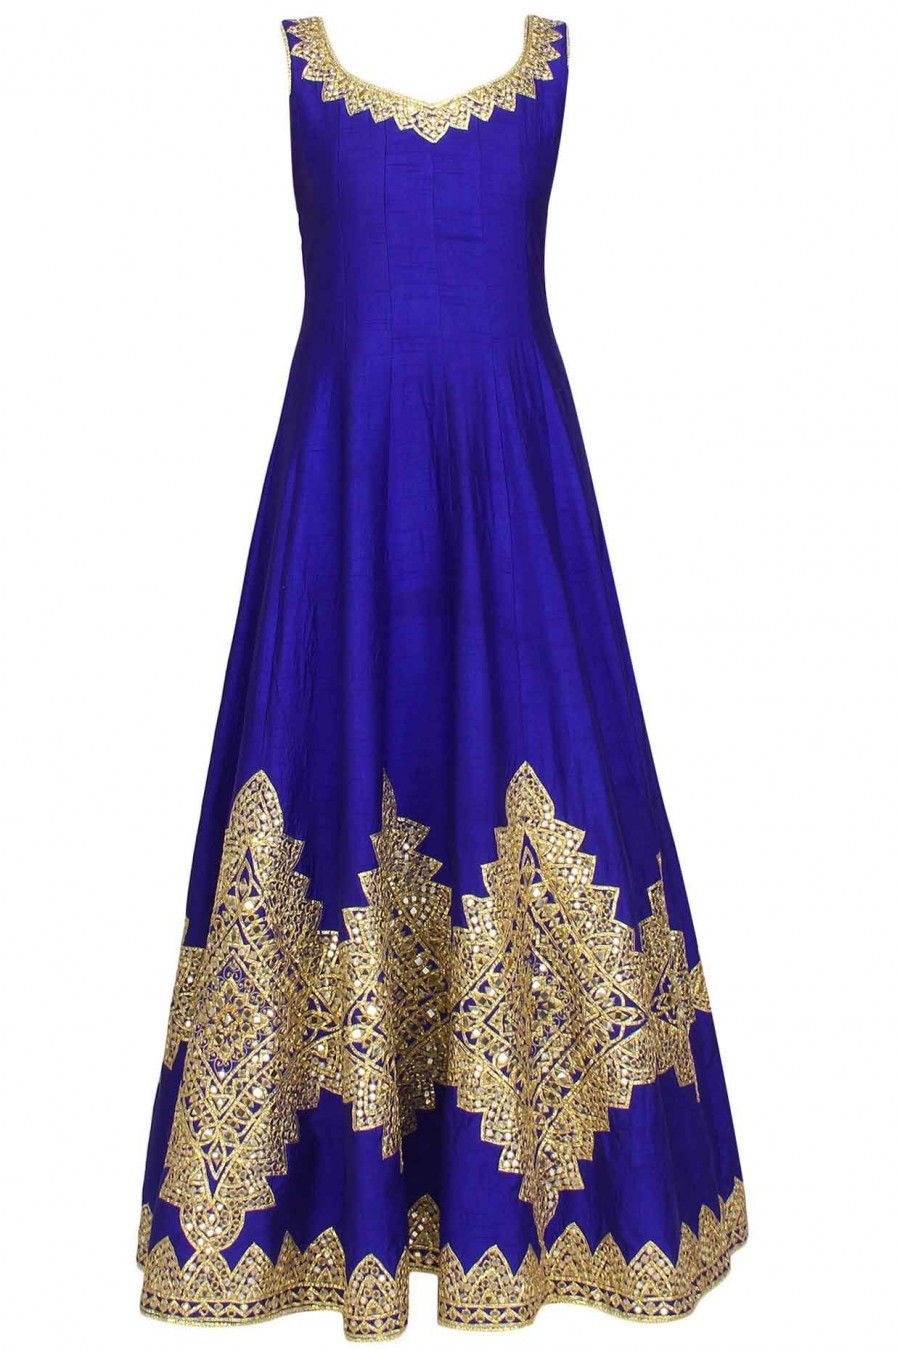 5ffcb16e80 This blue anarkali is in raw silk fabric appliqued with diamond pattern  gold gota patti lace and mirror work embroidery all over the front and bach  ghera ...